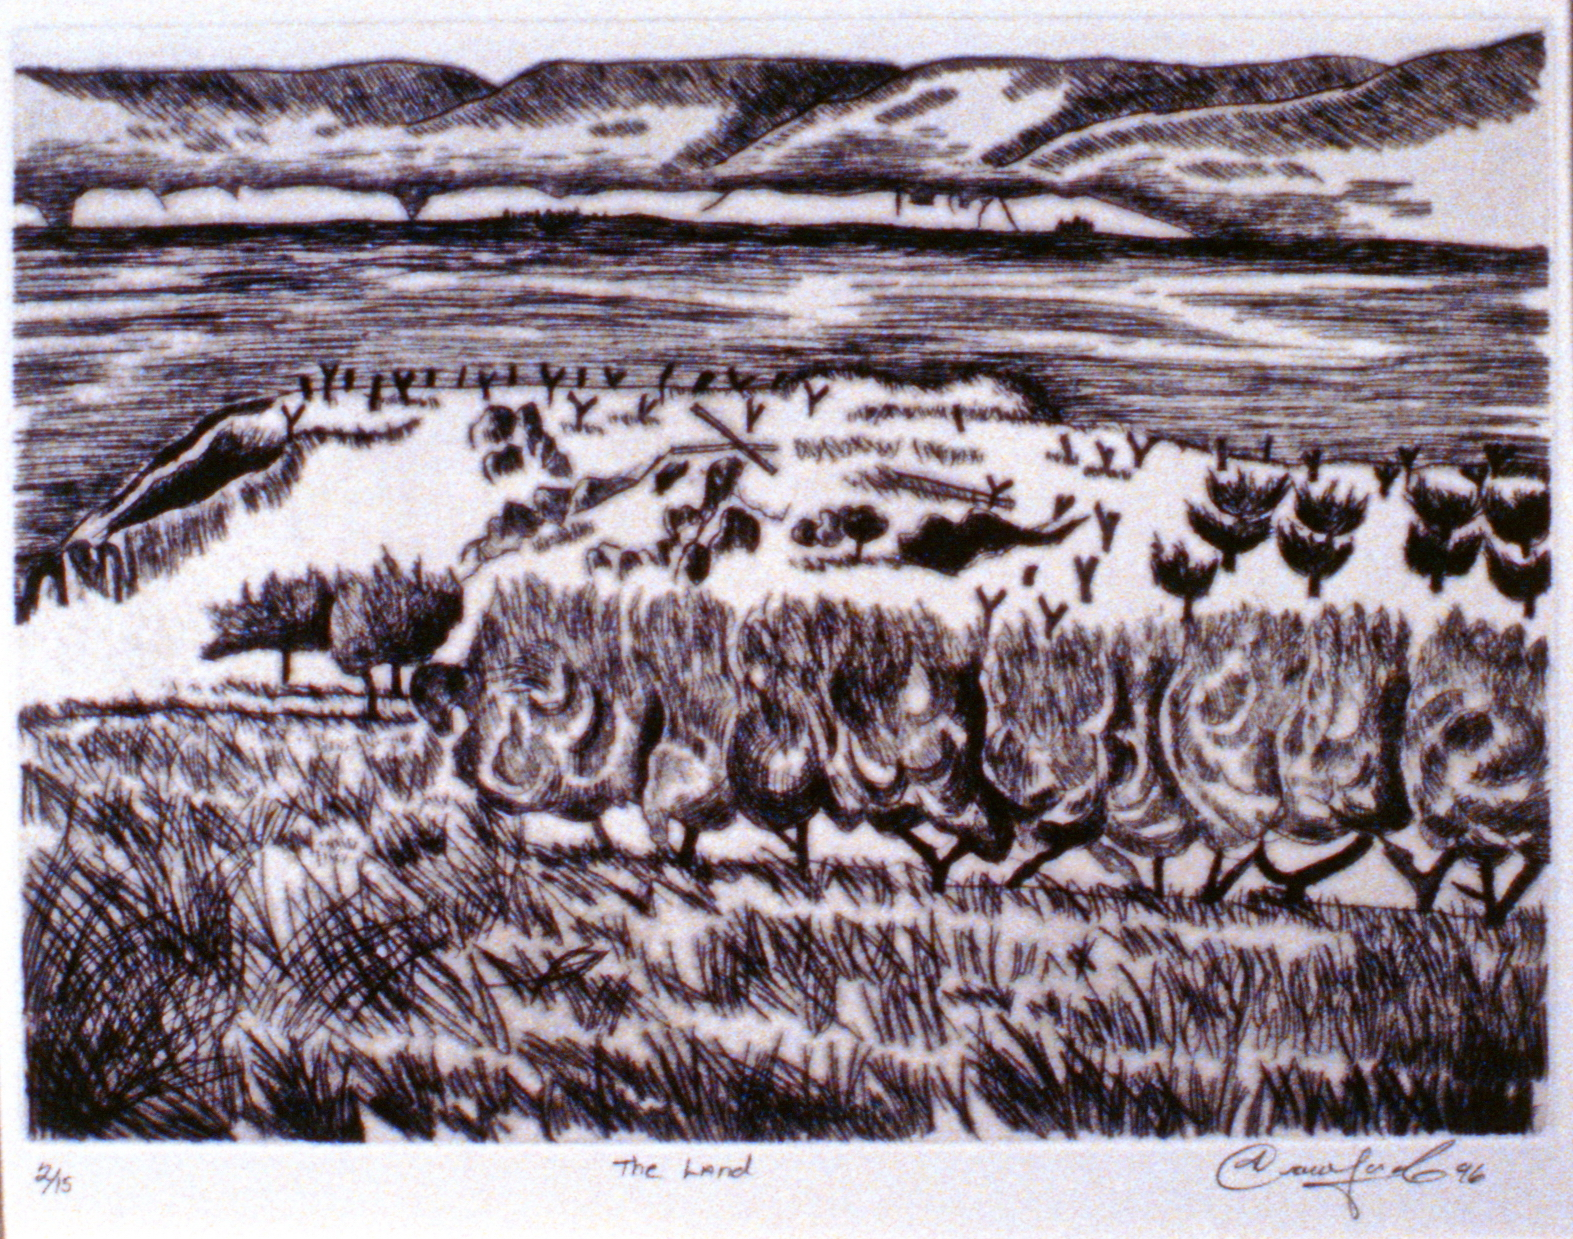 The Land,  1996, Jan Crawford, etching, edition 2/15, 20 x 27.5 cm, 1997.03.01. Gift of the artist.